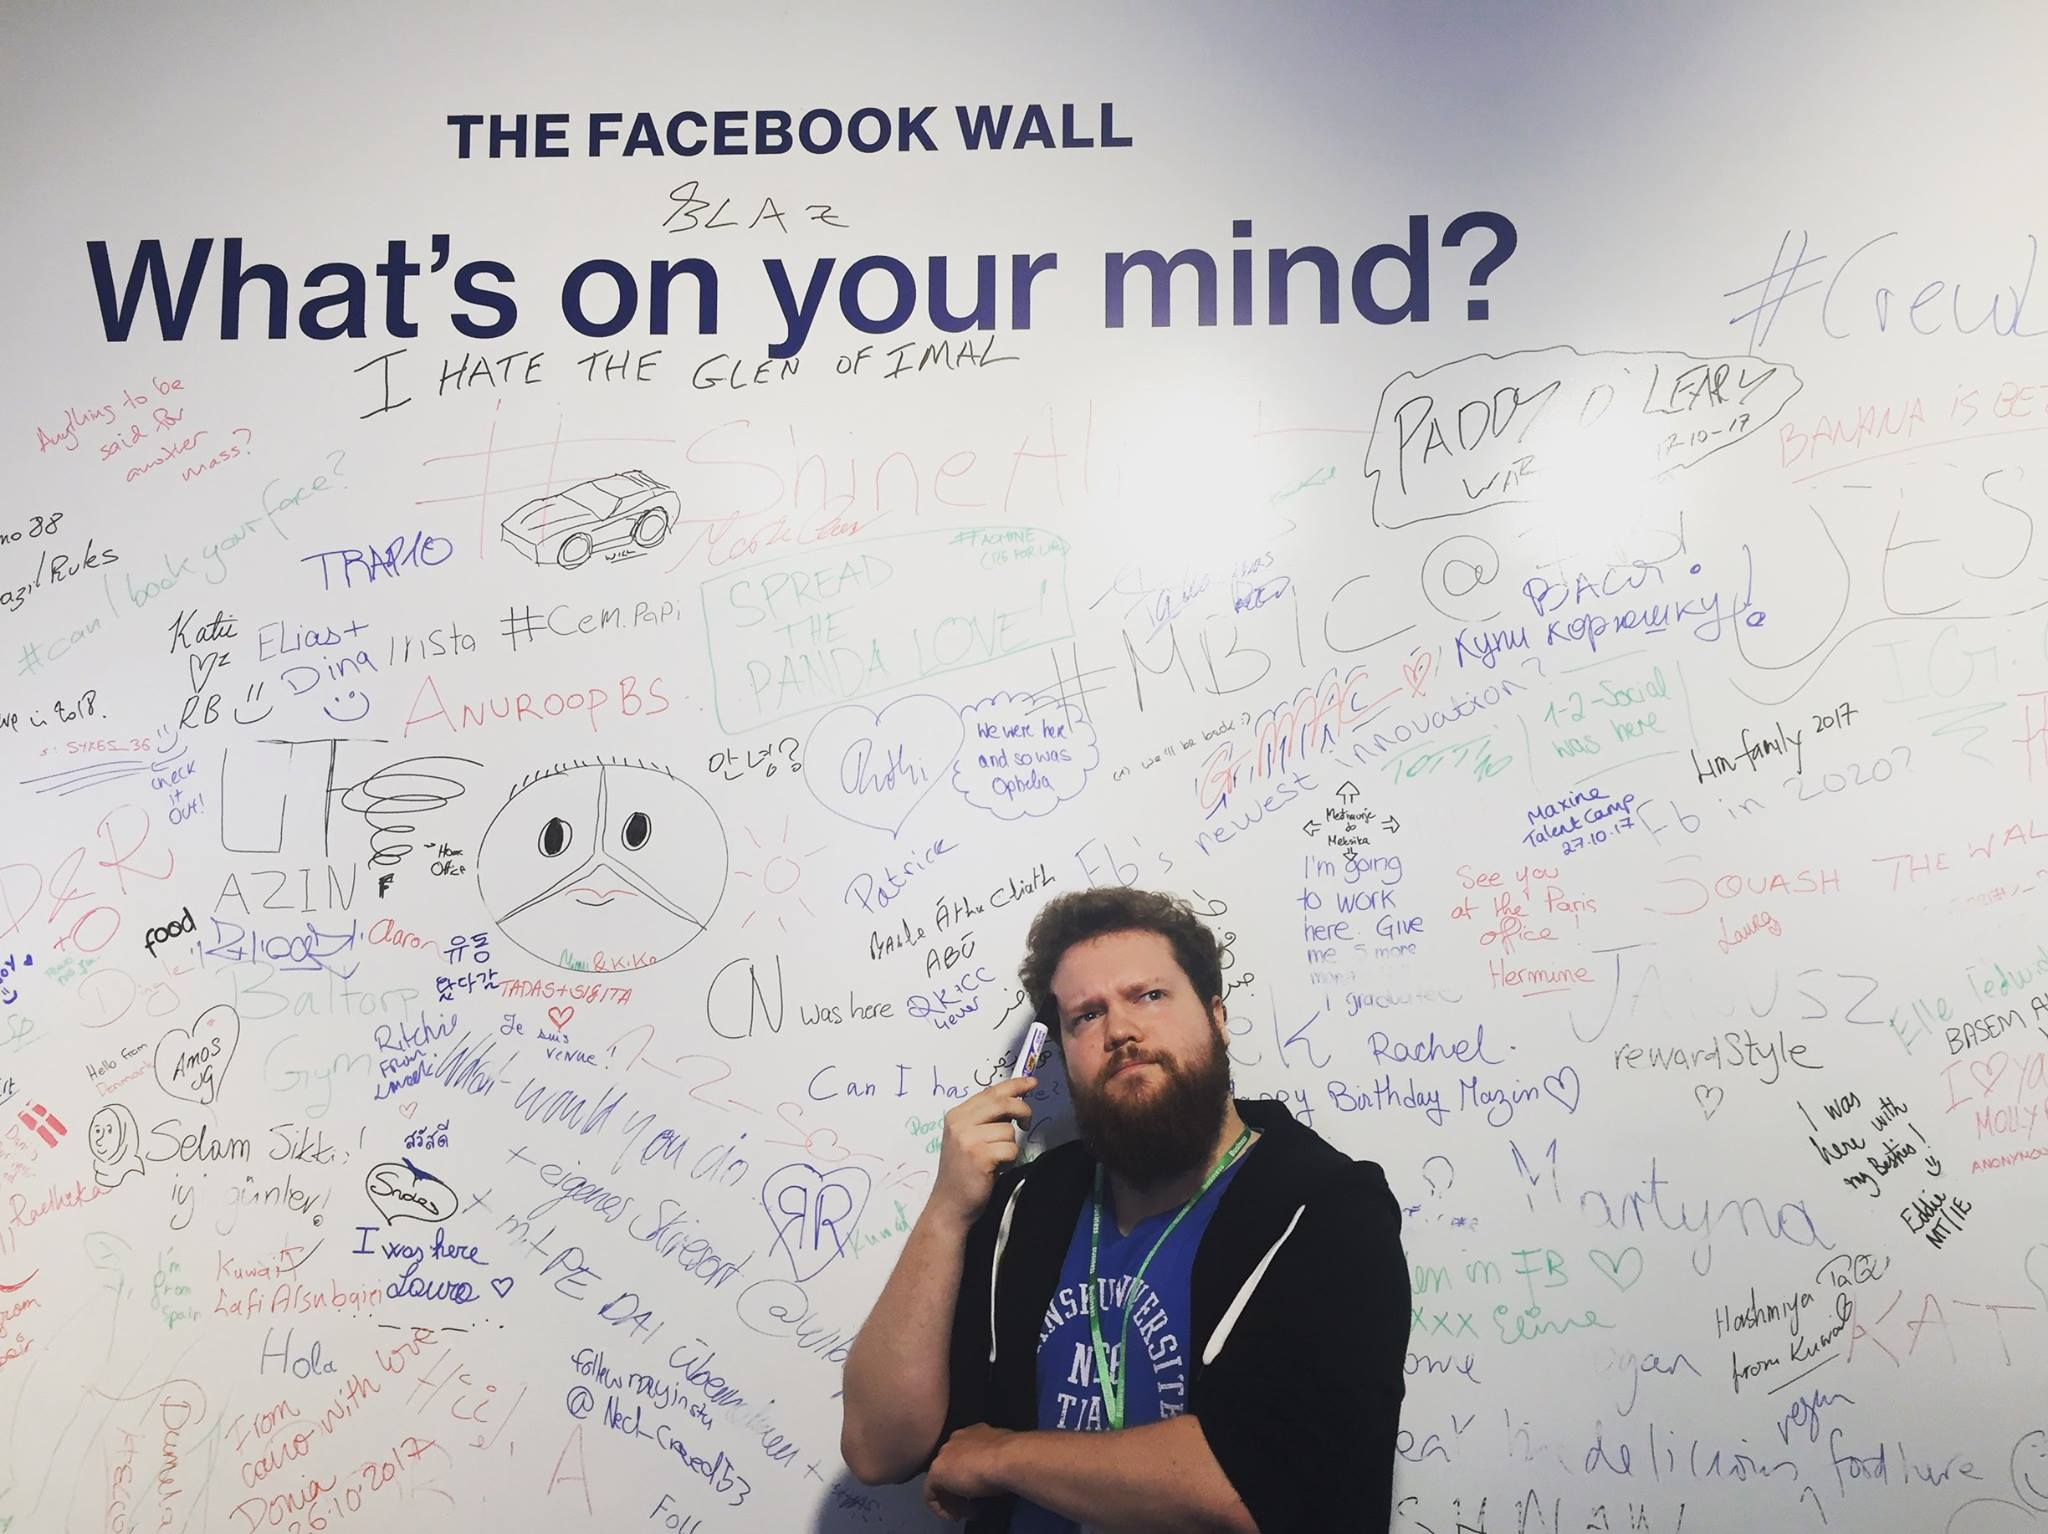 Søren and the Facebook wall